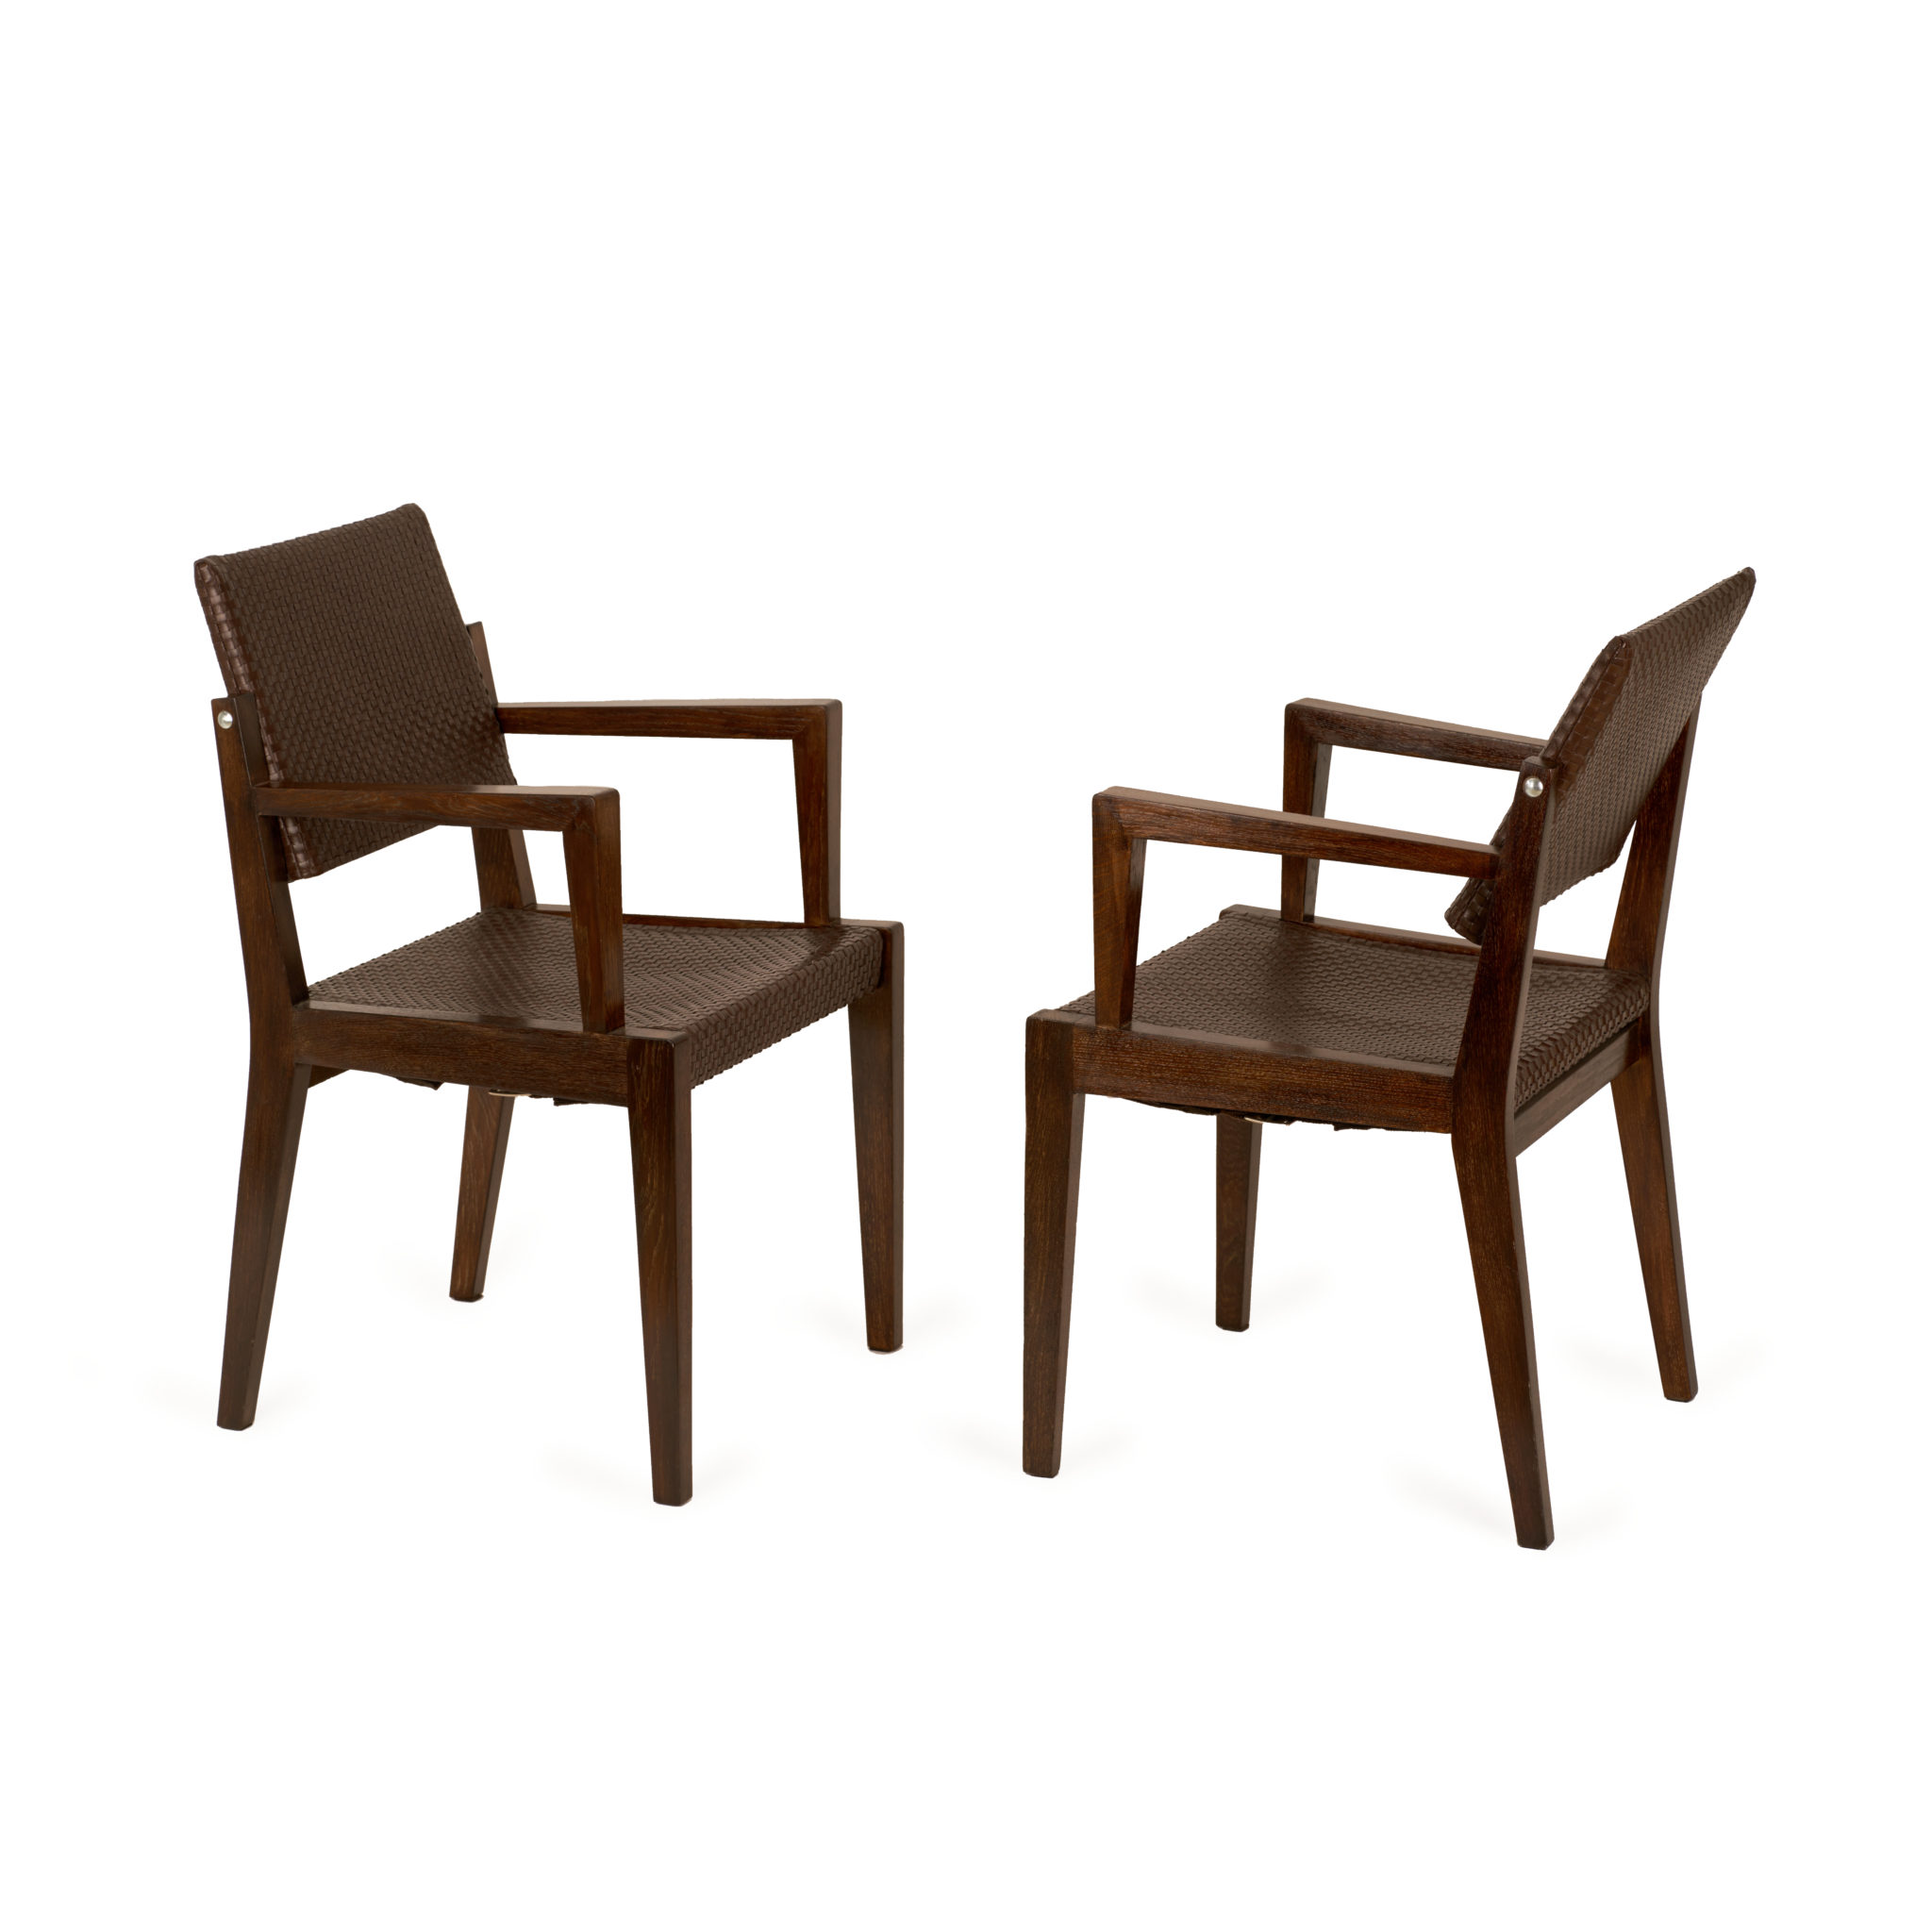 Chairs Adnet 1939